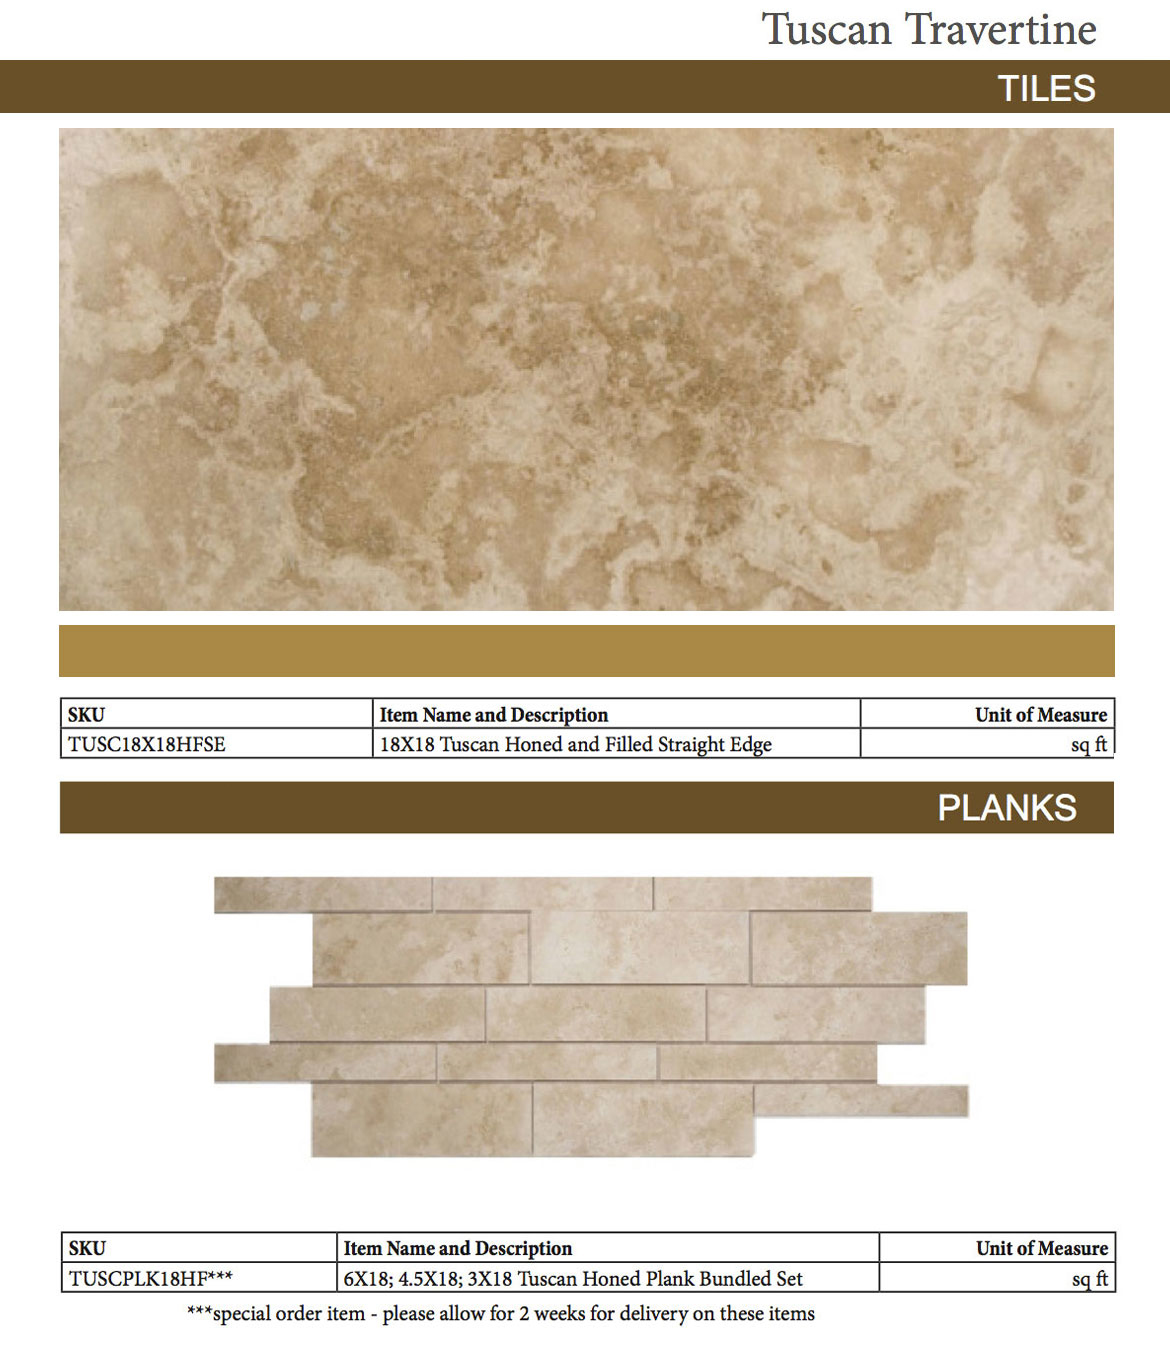 Tuscan-Travertine-Tiles-and-Planks